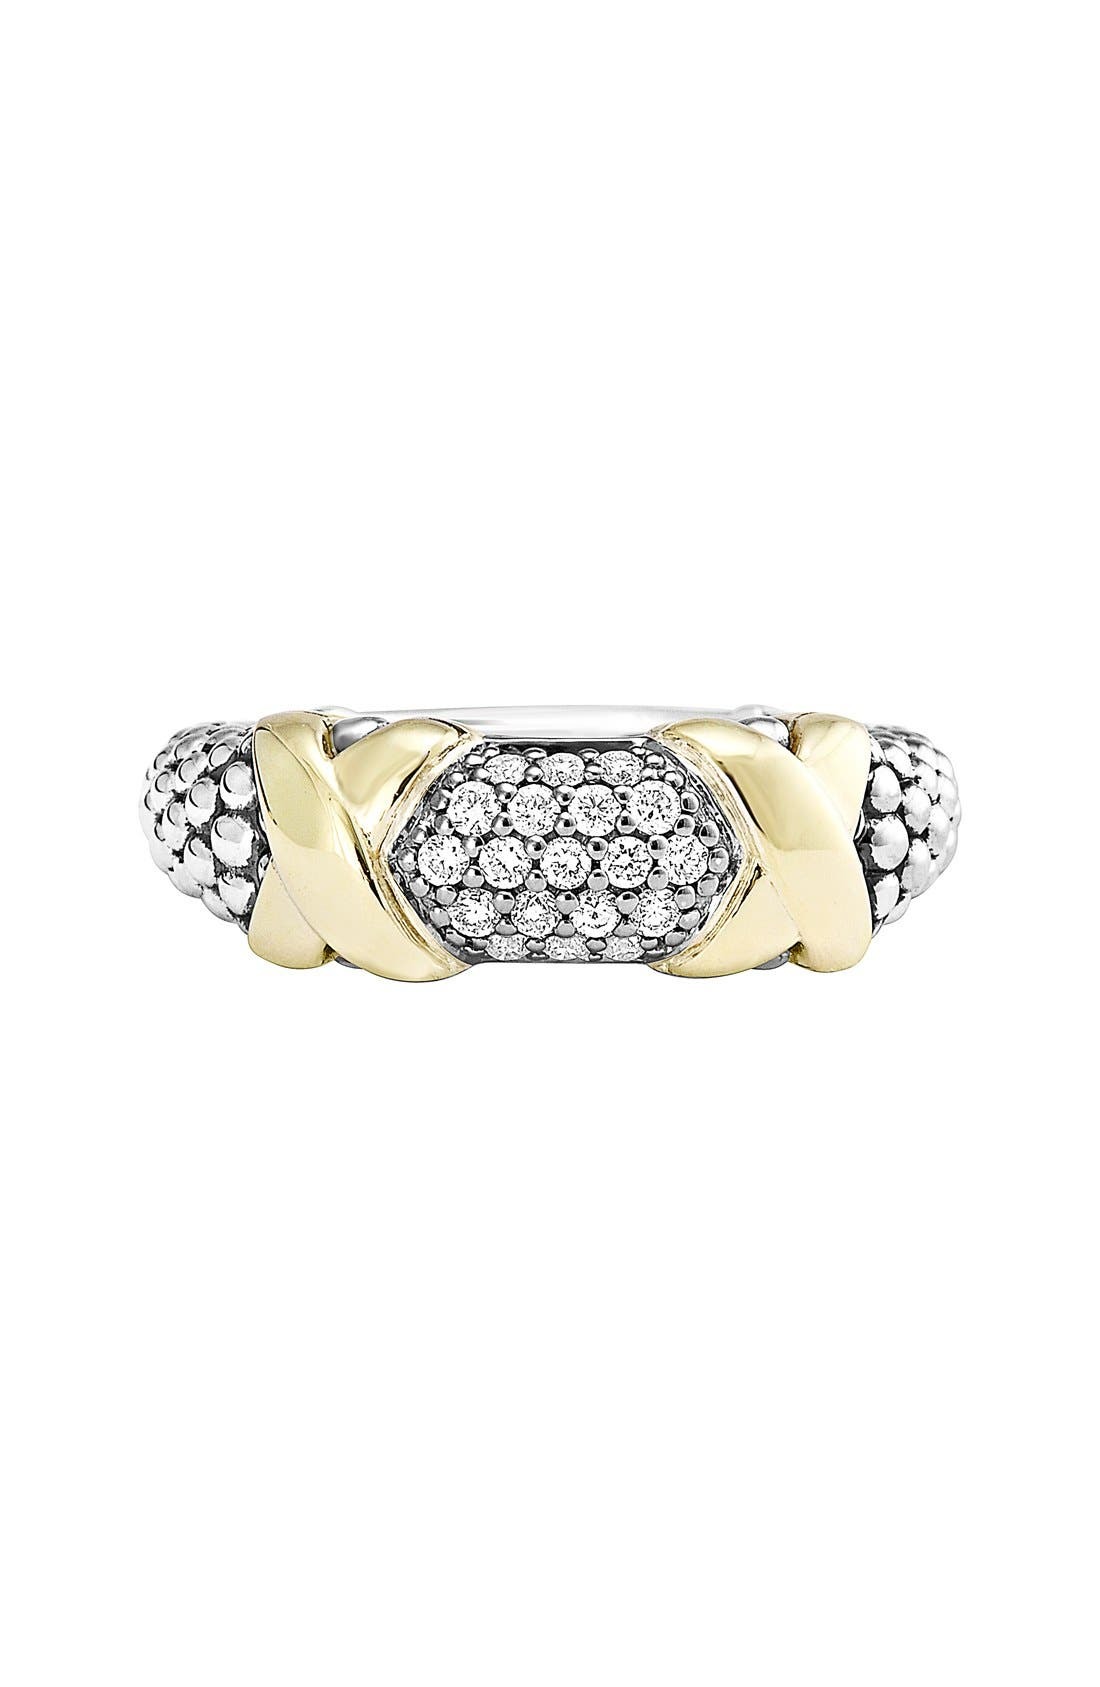 'Diamond Luxe' Ring,                             Alternate thumbnail 4, color,                             040